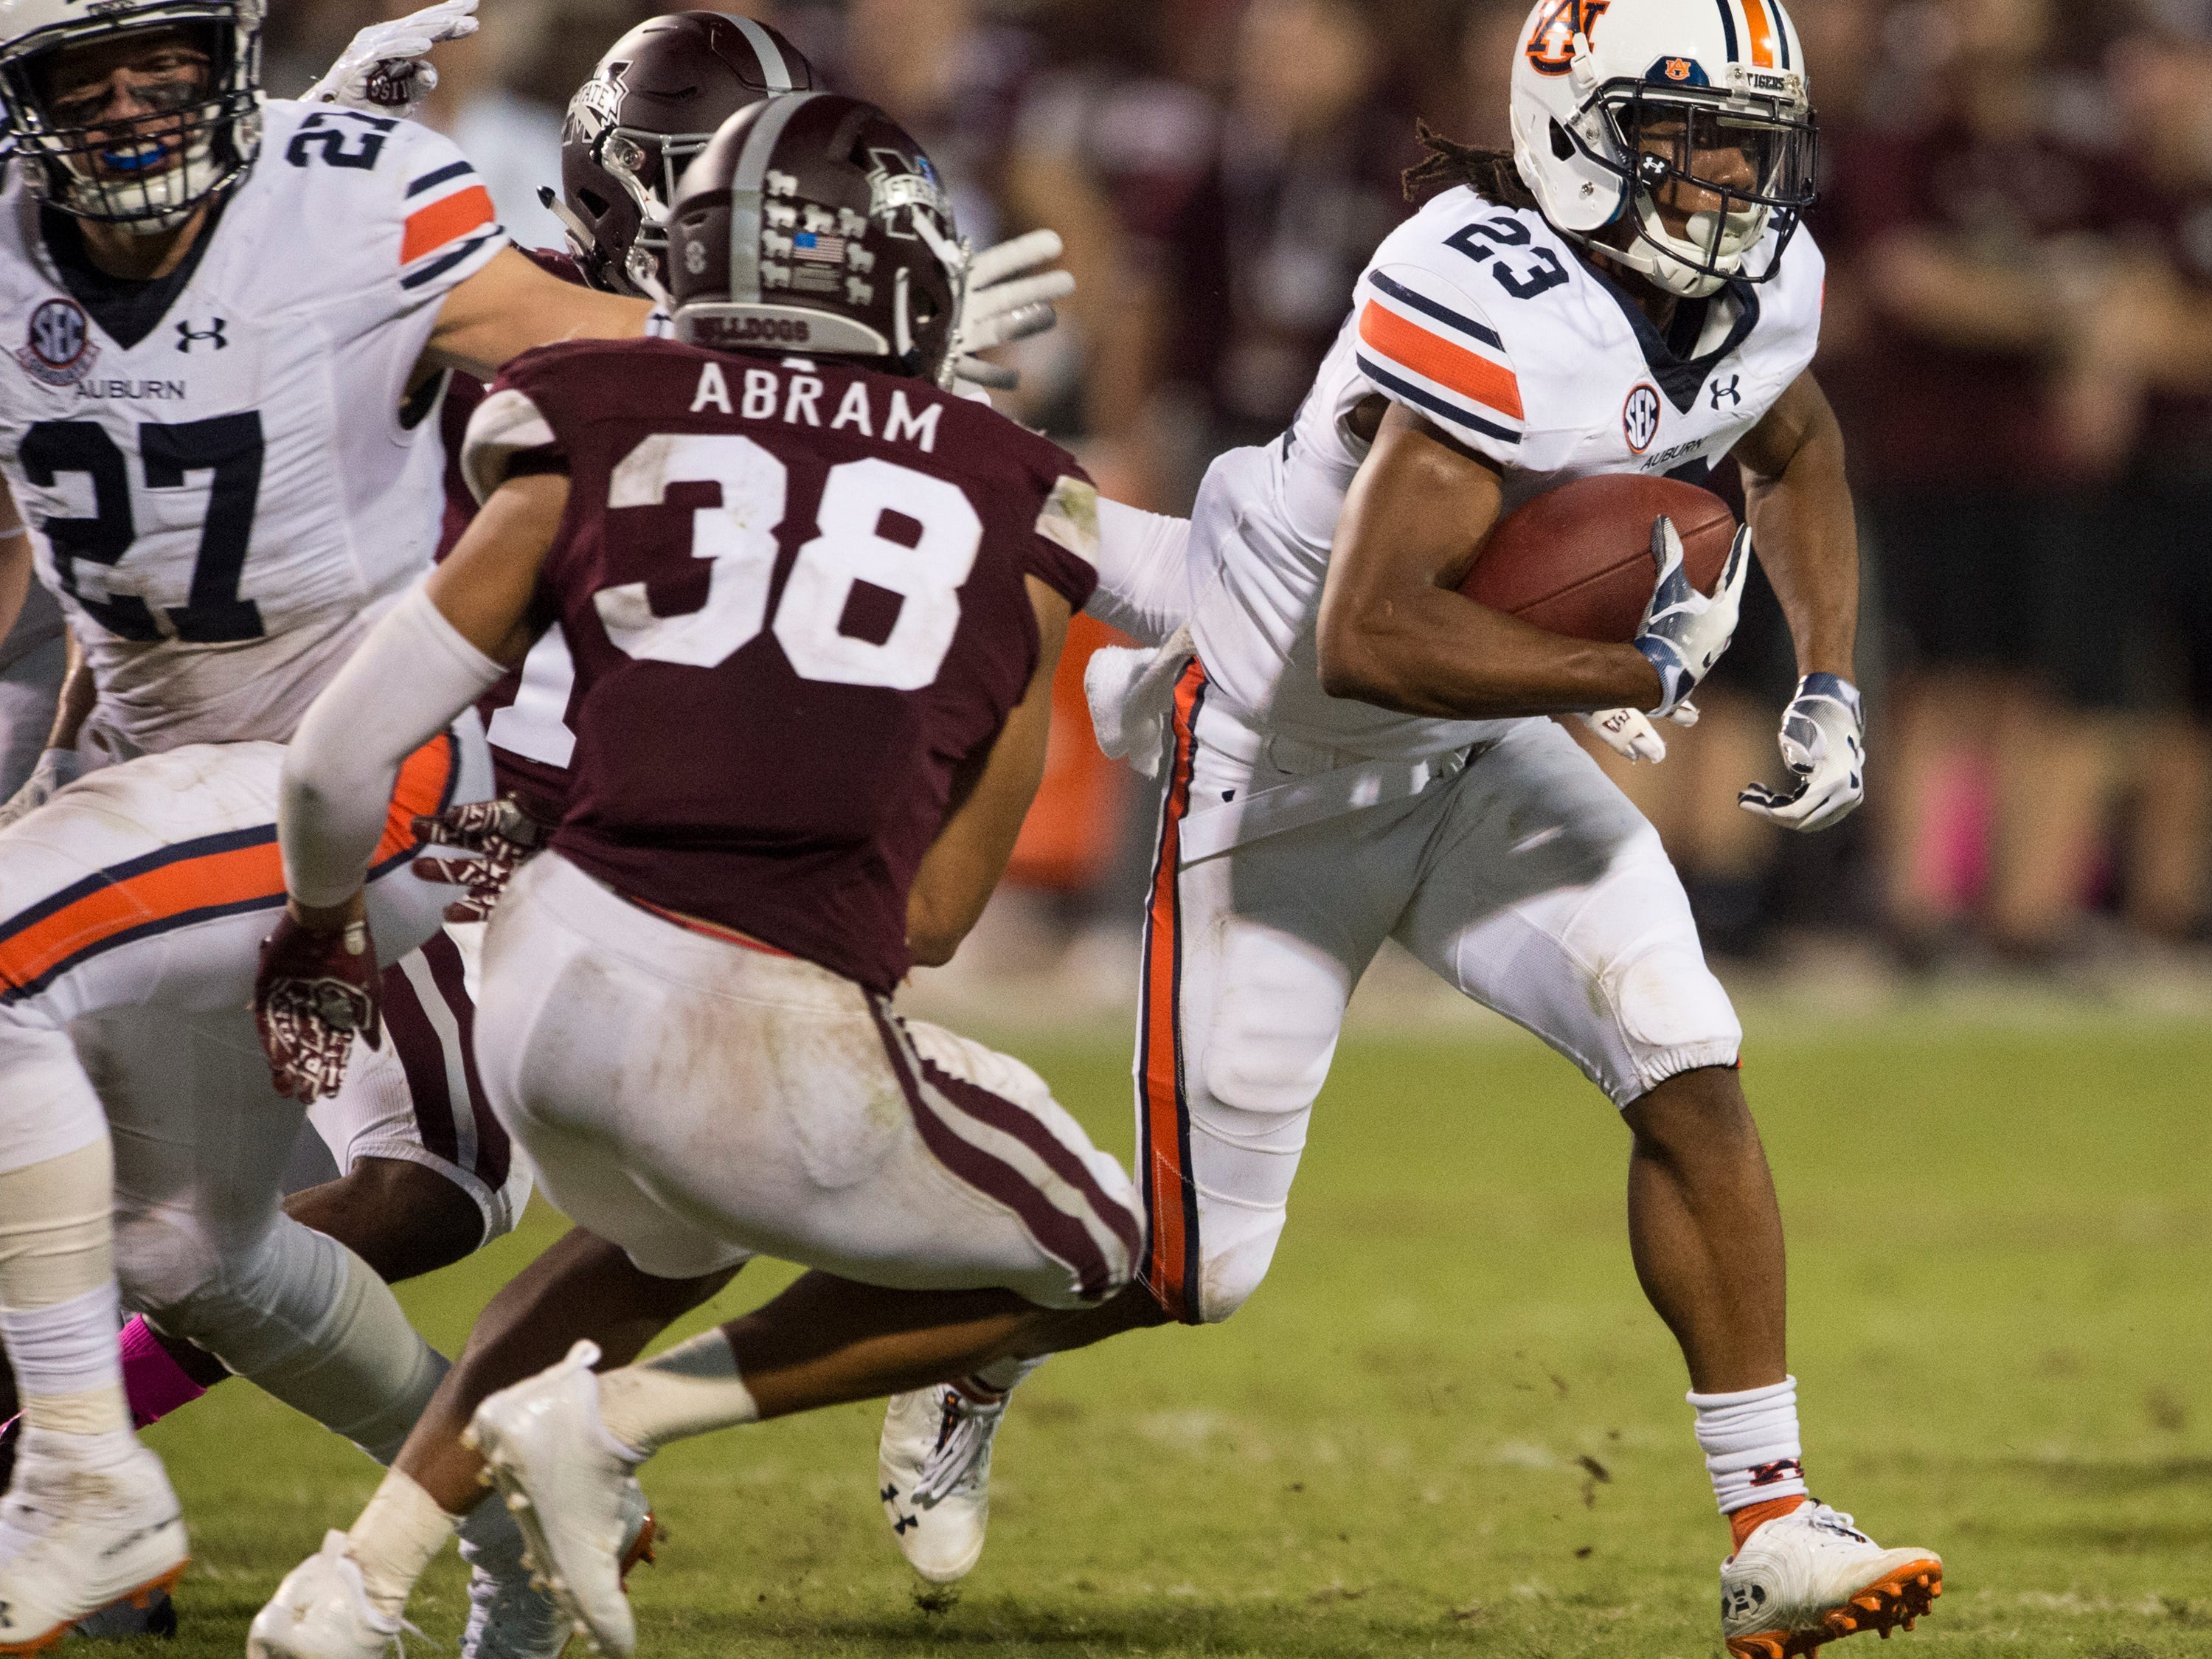 Auburn's Ryan Davis (23) runs the ball down the field against Mississippi State at Davis Wade Stadium in Starkville, Miss., on Saturday, Oct. 6, 2018. Mississippi State defeated Auburn 23-9.